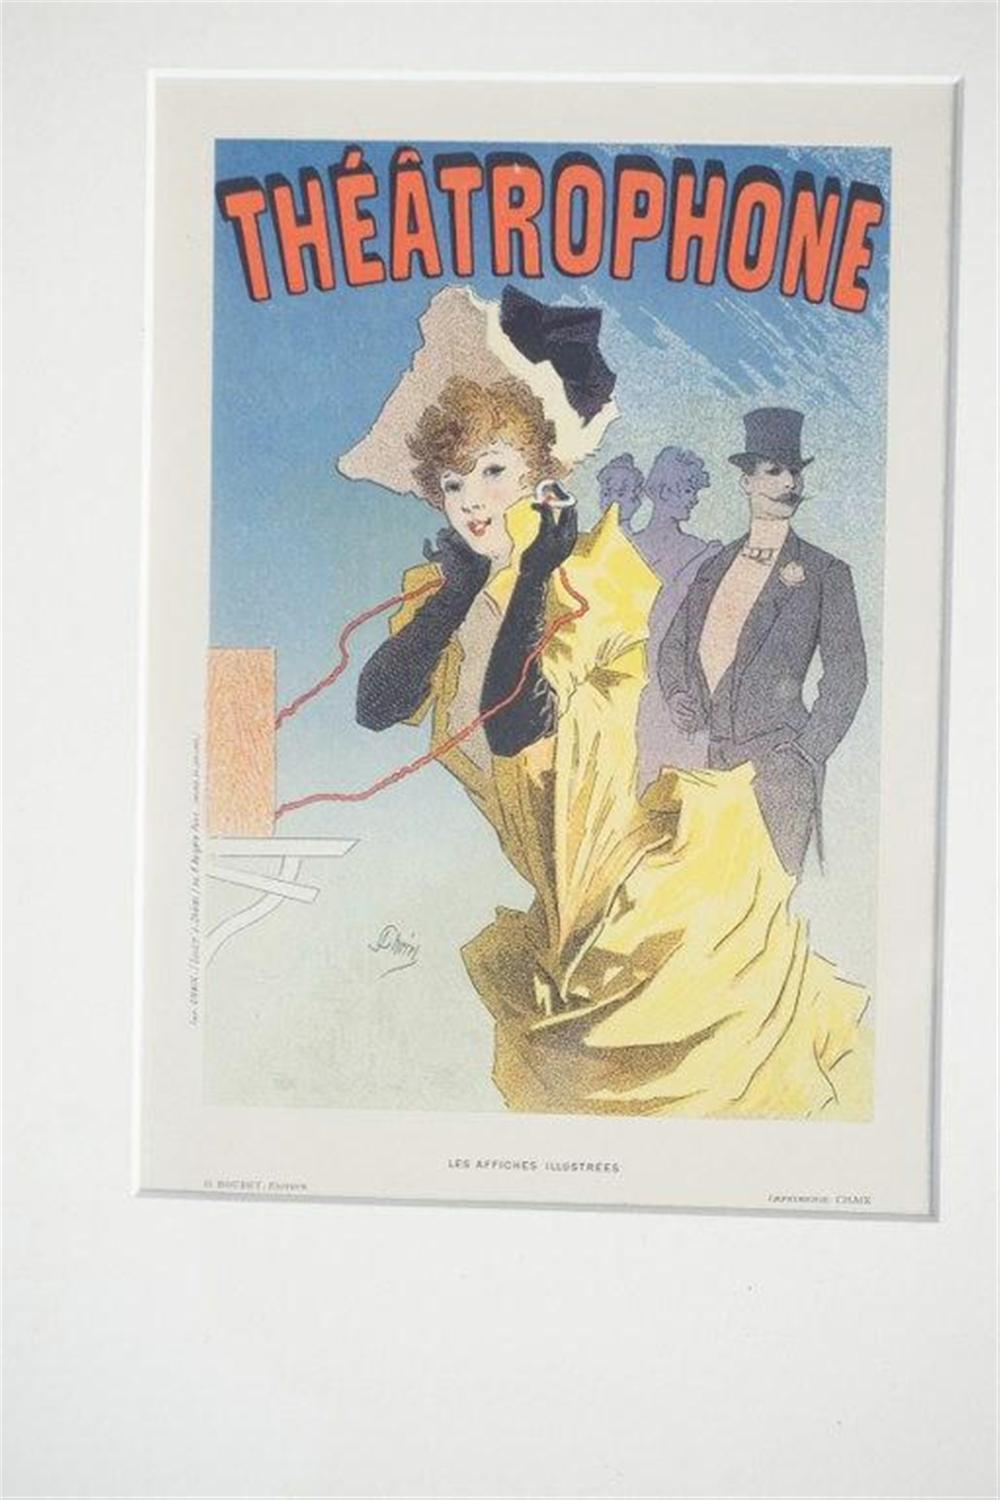 "1896 CHERET THEATEROPHONE STONE LITHO POSTER, PARIS, SHEET SIZE 8 3/4"" X 12 1/4"", EXCELLENT CONDITION, SHRINK WRAPPED AND MATTED, FROM RETIRED DEALER COLLECTION.  IMPRIMERIE CHAIX."